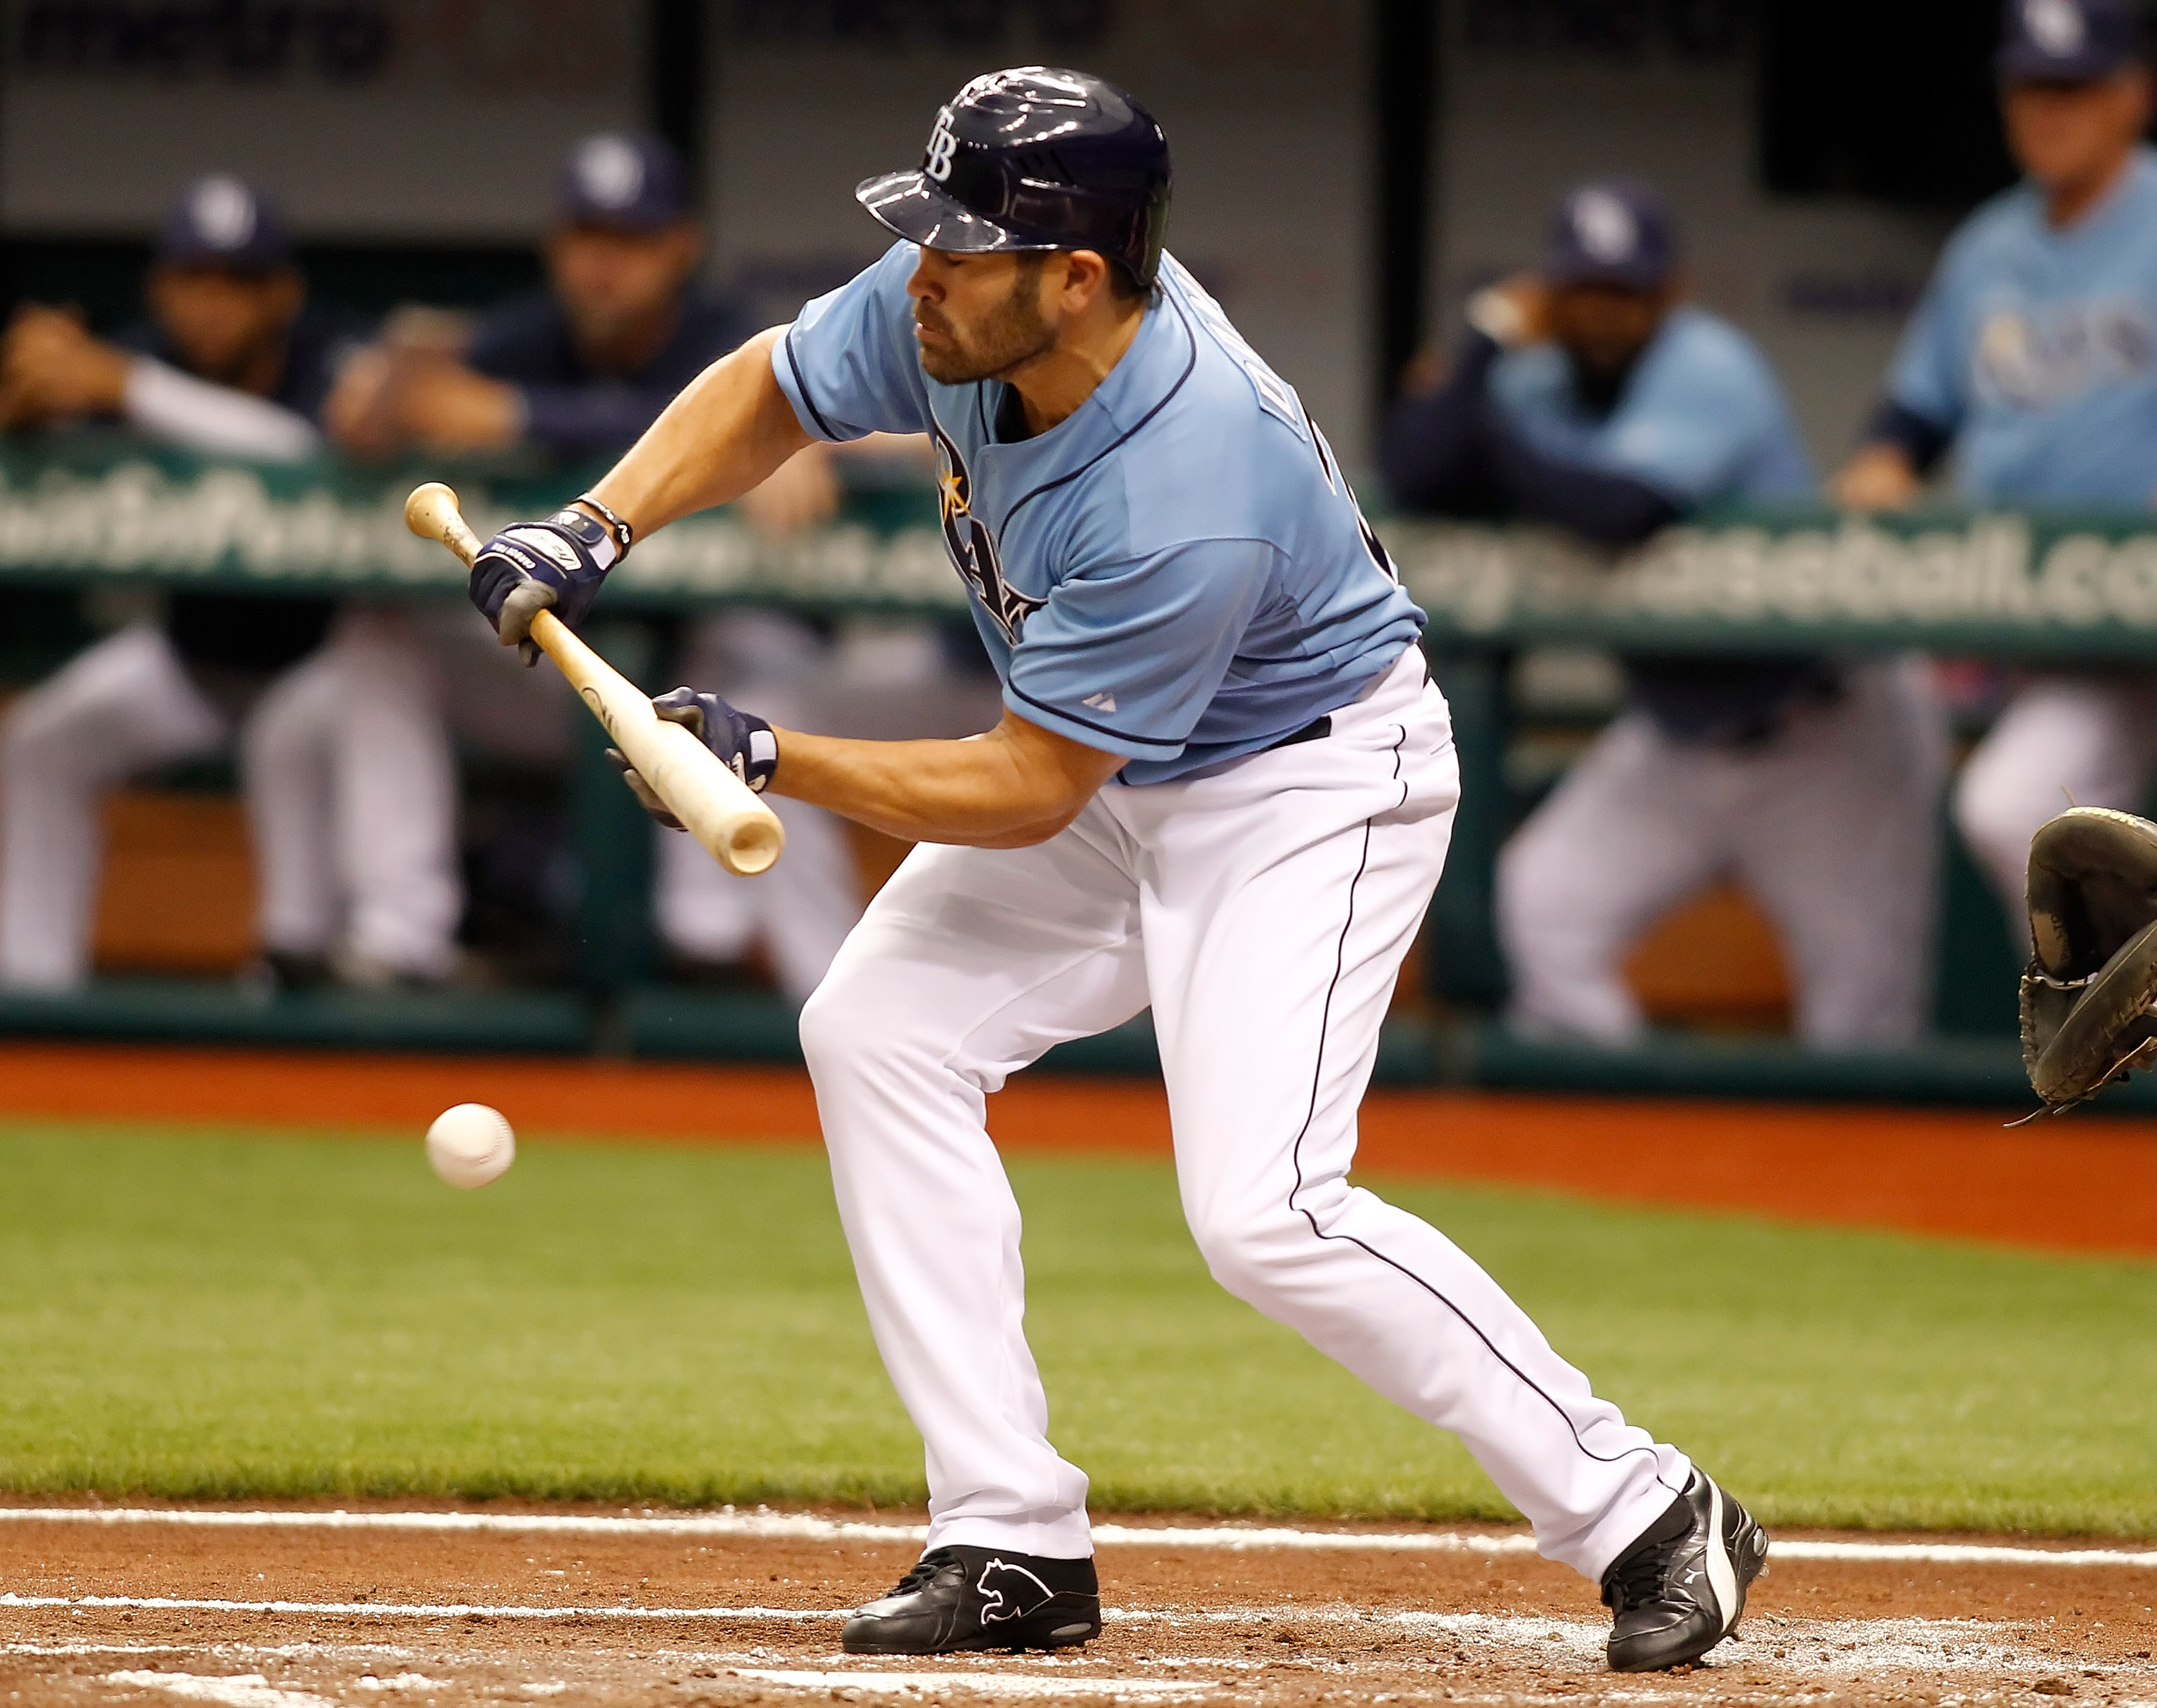 ST. PETERSBURG, FL - APRIL 17:  Outfielder Johnny Damon #22 of the Tampa Bay Rays attempts a bunt against the Minnesota Twins during the game at Tropicana Field on April 17, 2011 in St. Petersburg, Florida.  (Photo by J. Meric/Getty Images)